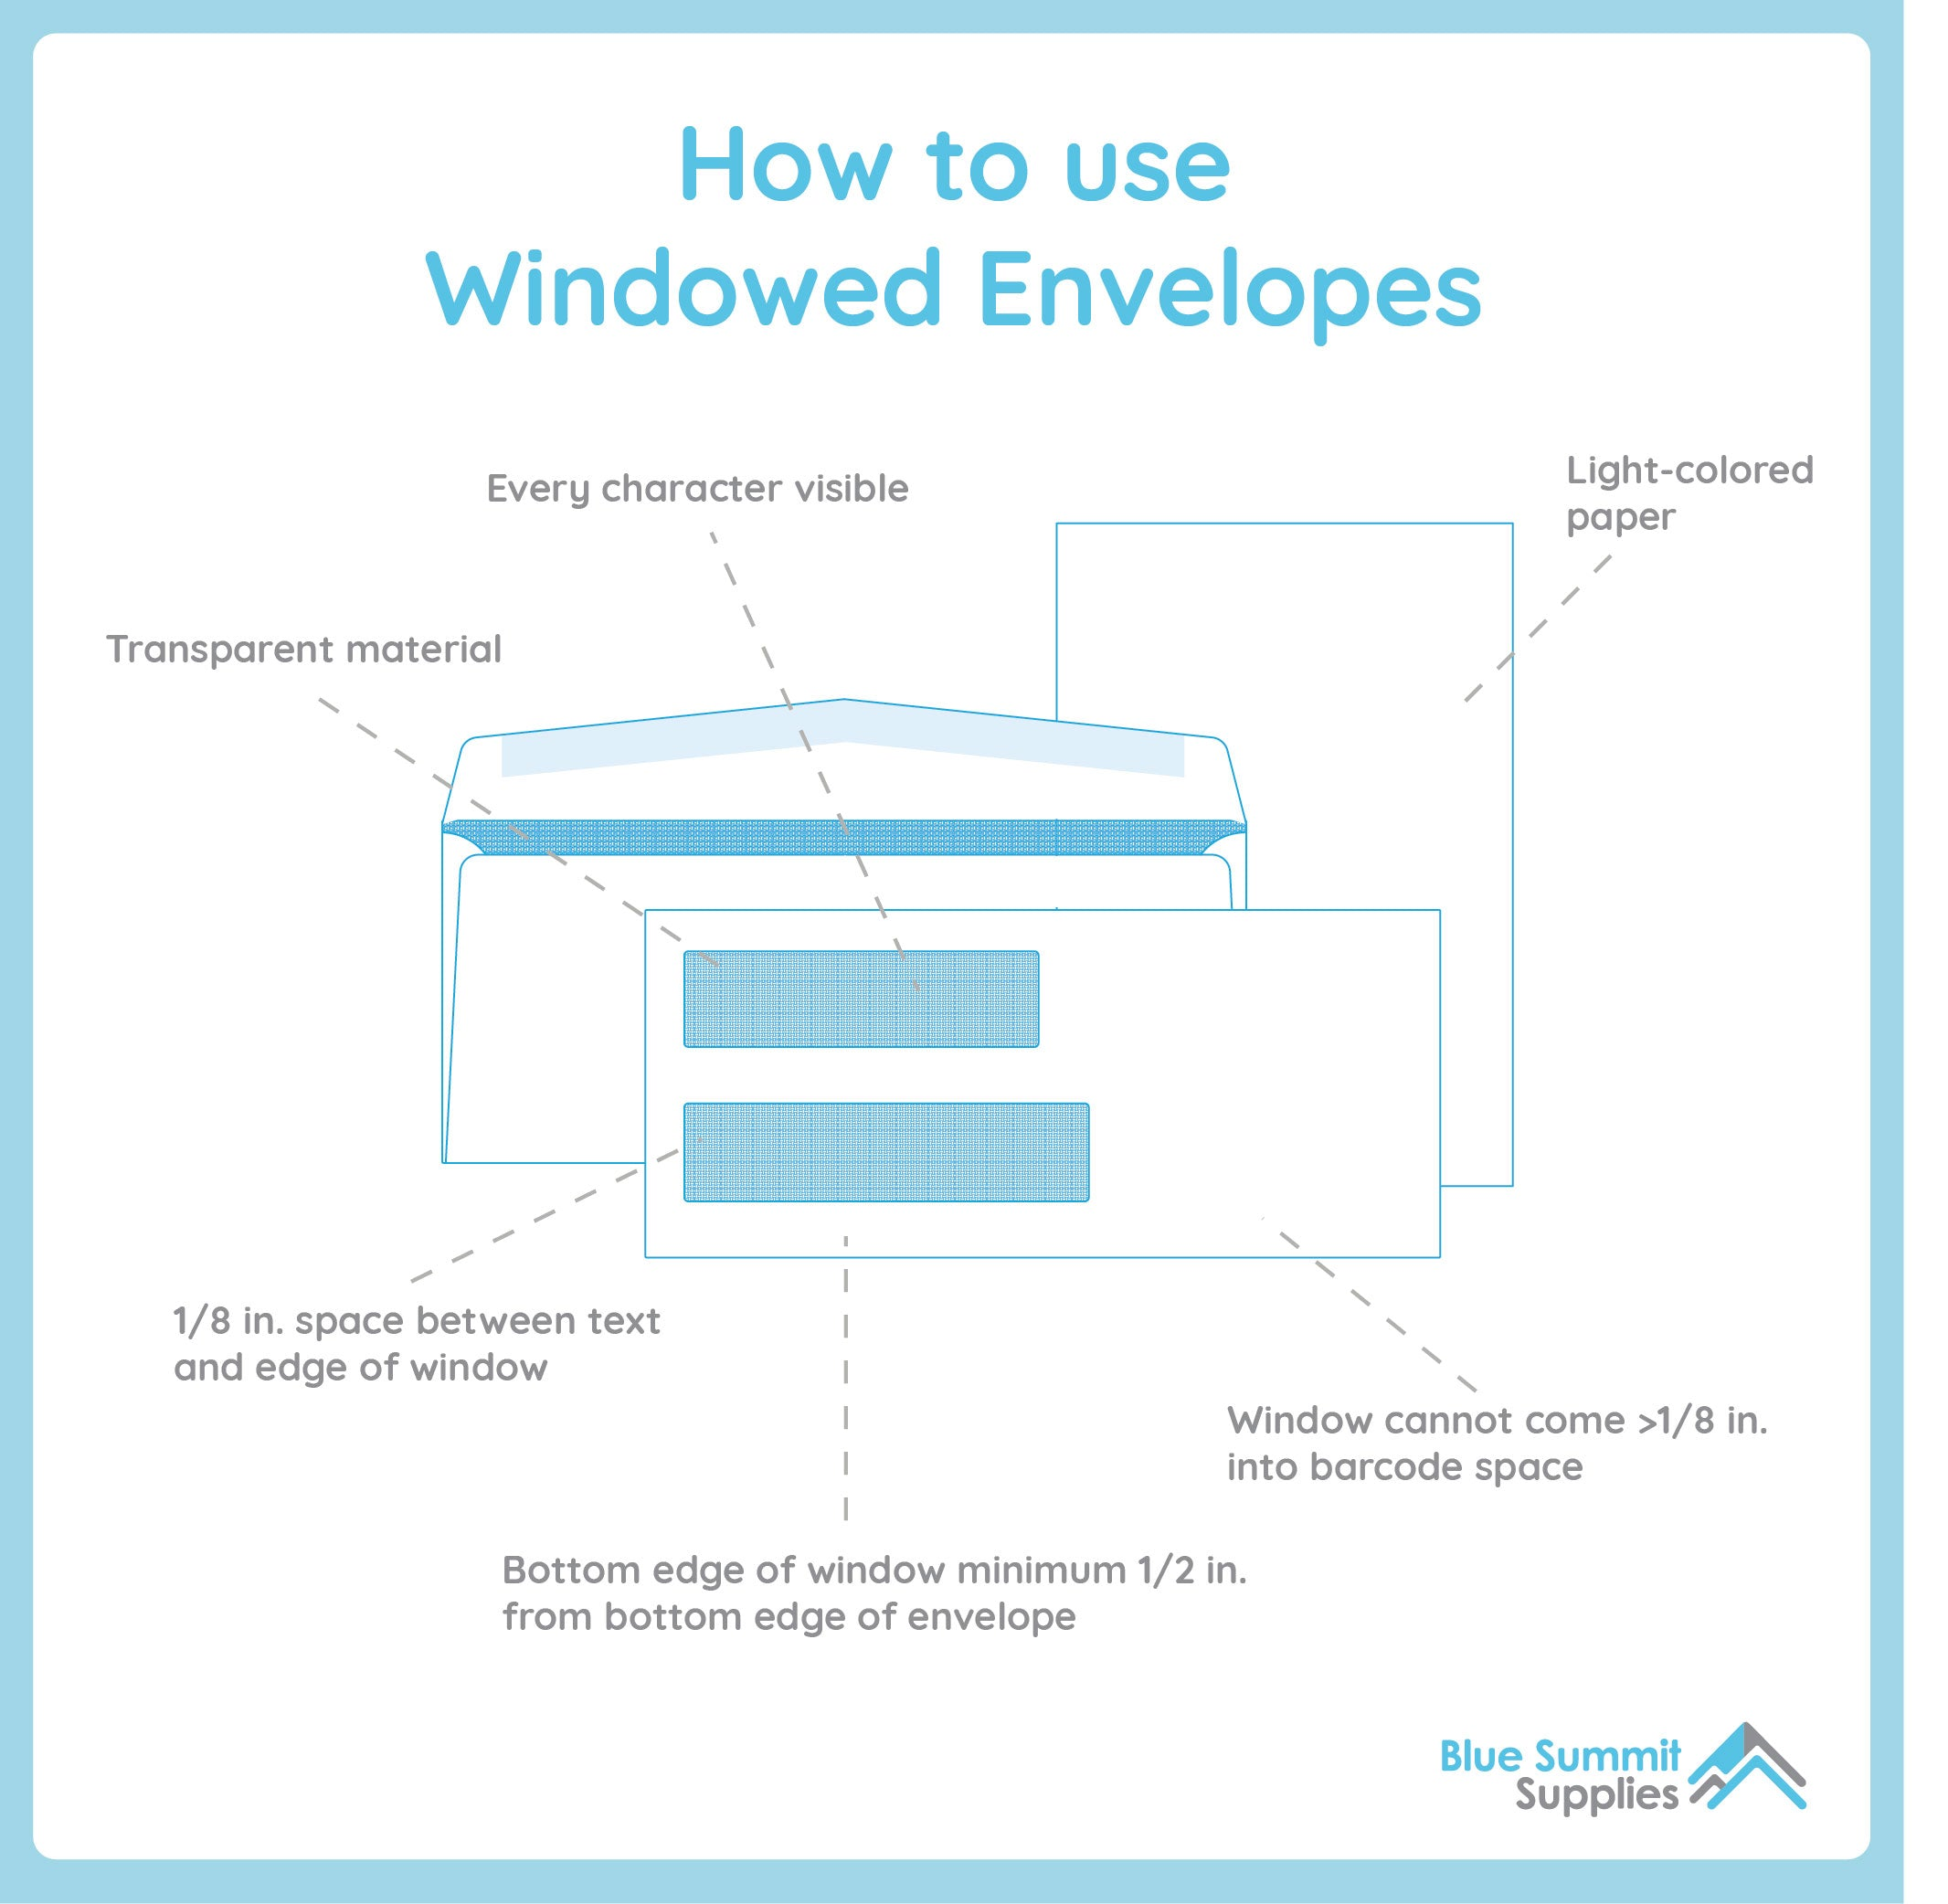 How to use a windowed envelope